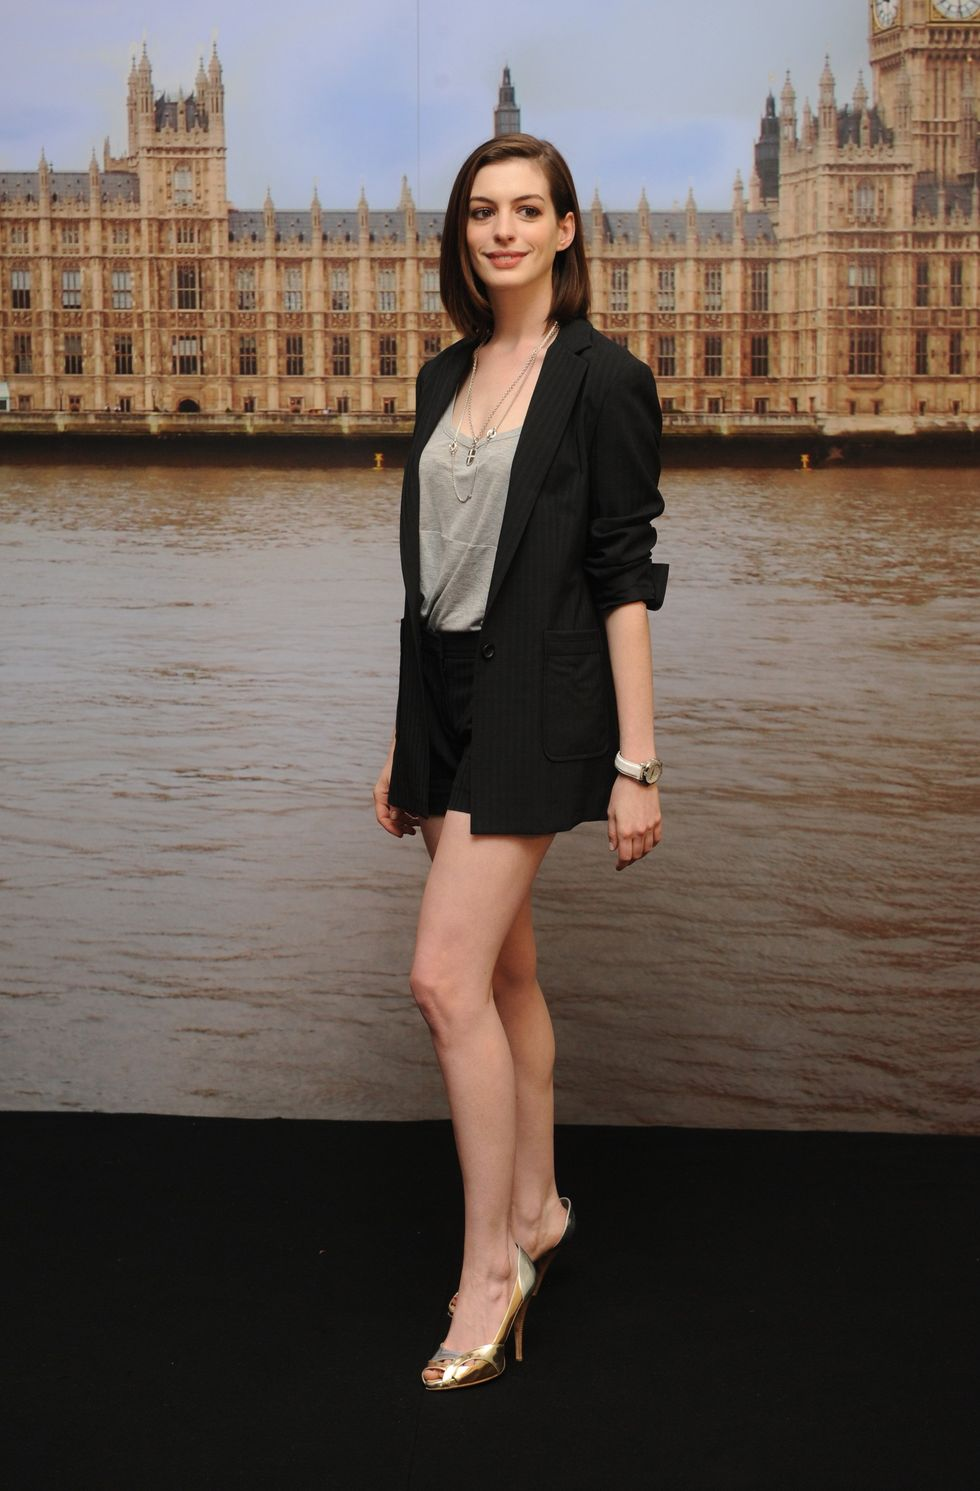 anne-hathaway-get-smart-photocall-in-london-01